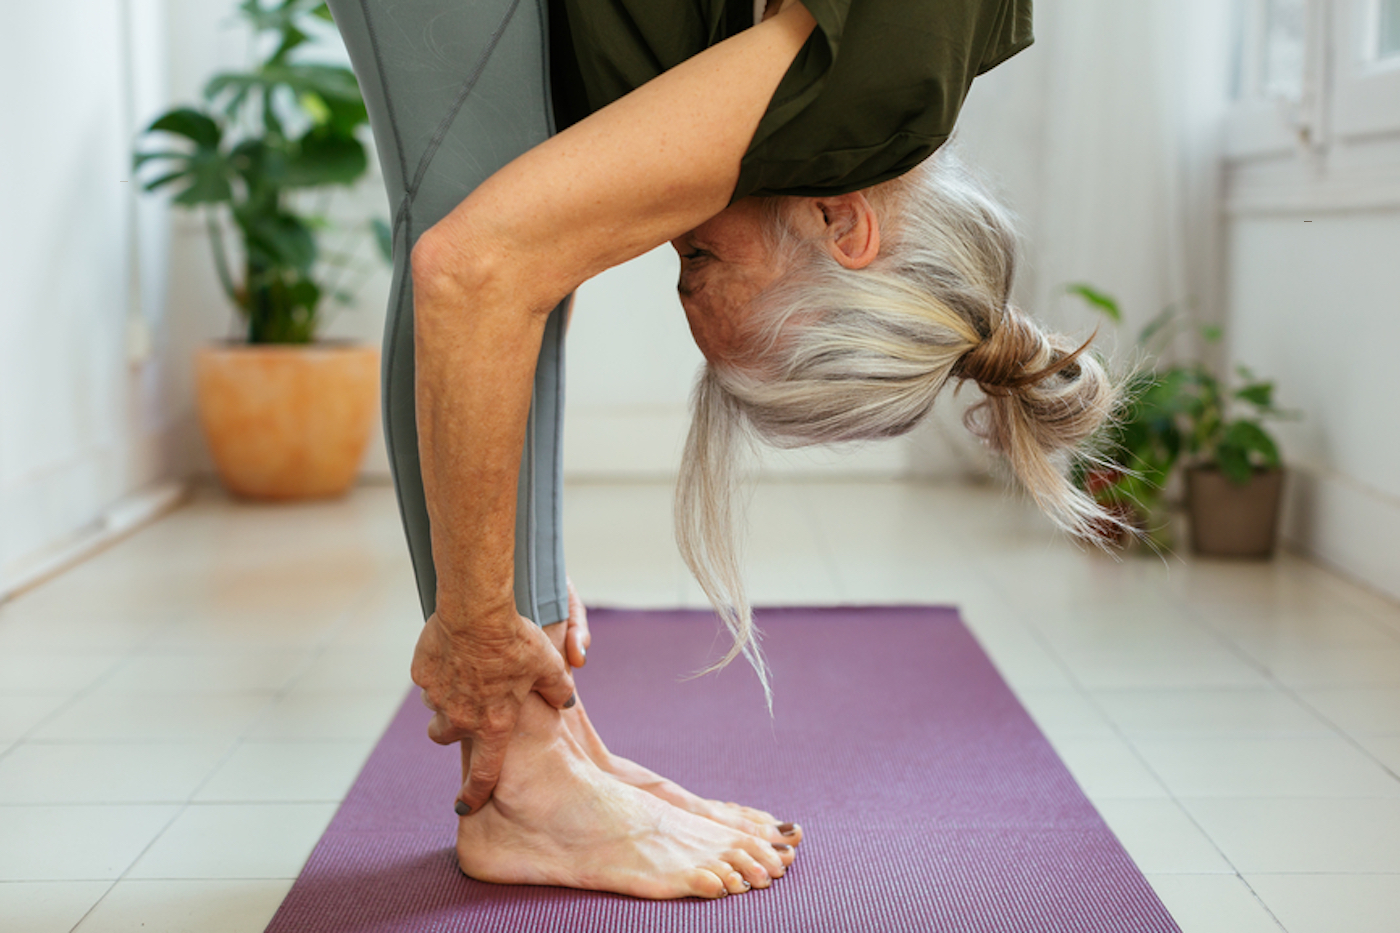 Thumbnail for 6 Balance Exercises for Seniors That Will Keep You Loose and Limber as You Age